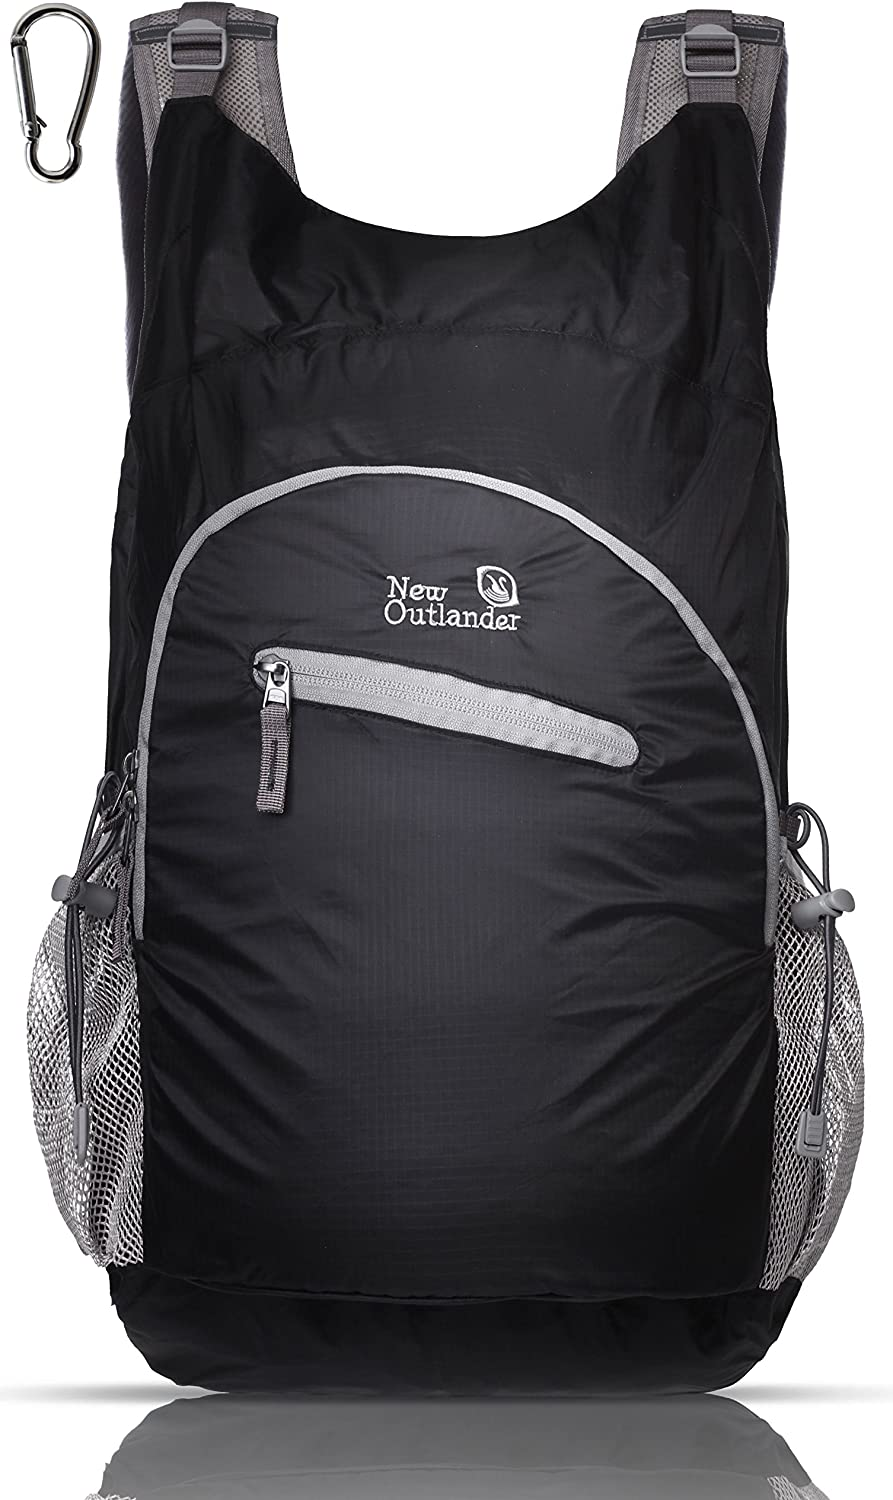 The Outlander Ultra Lightweight Packable Water Resistant Travel Hiking Backpack travel product recommended by Kalev Rudolph on Lifney.